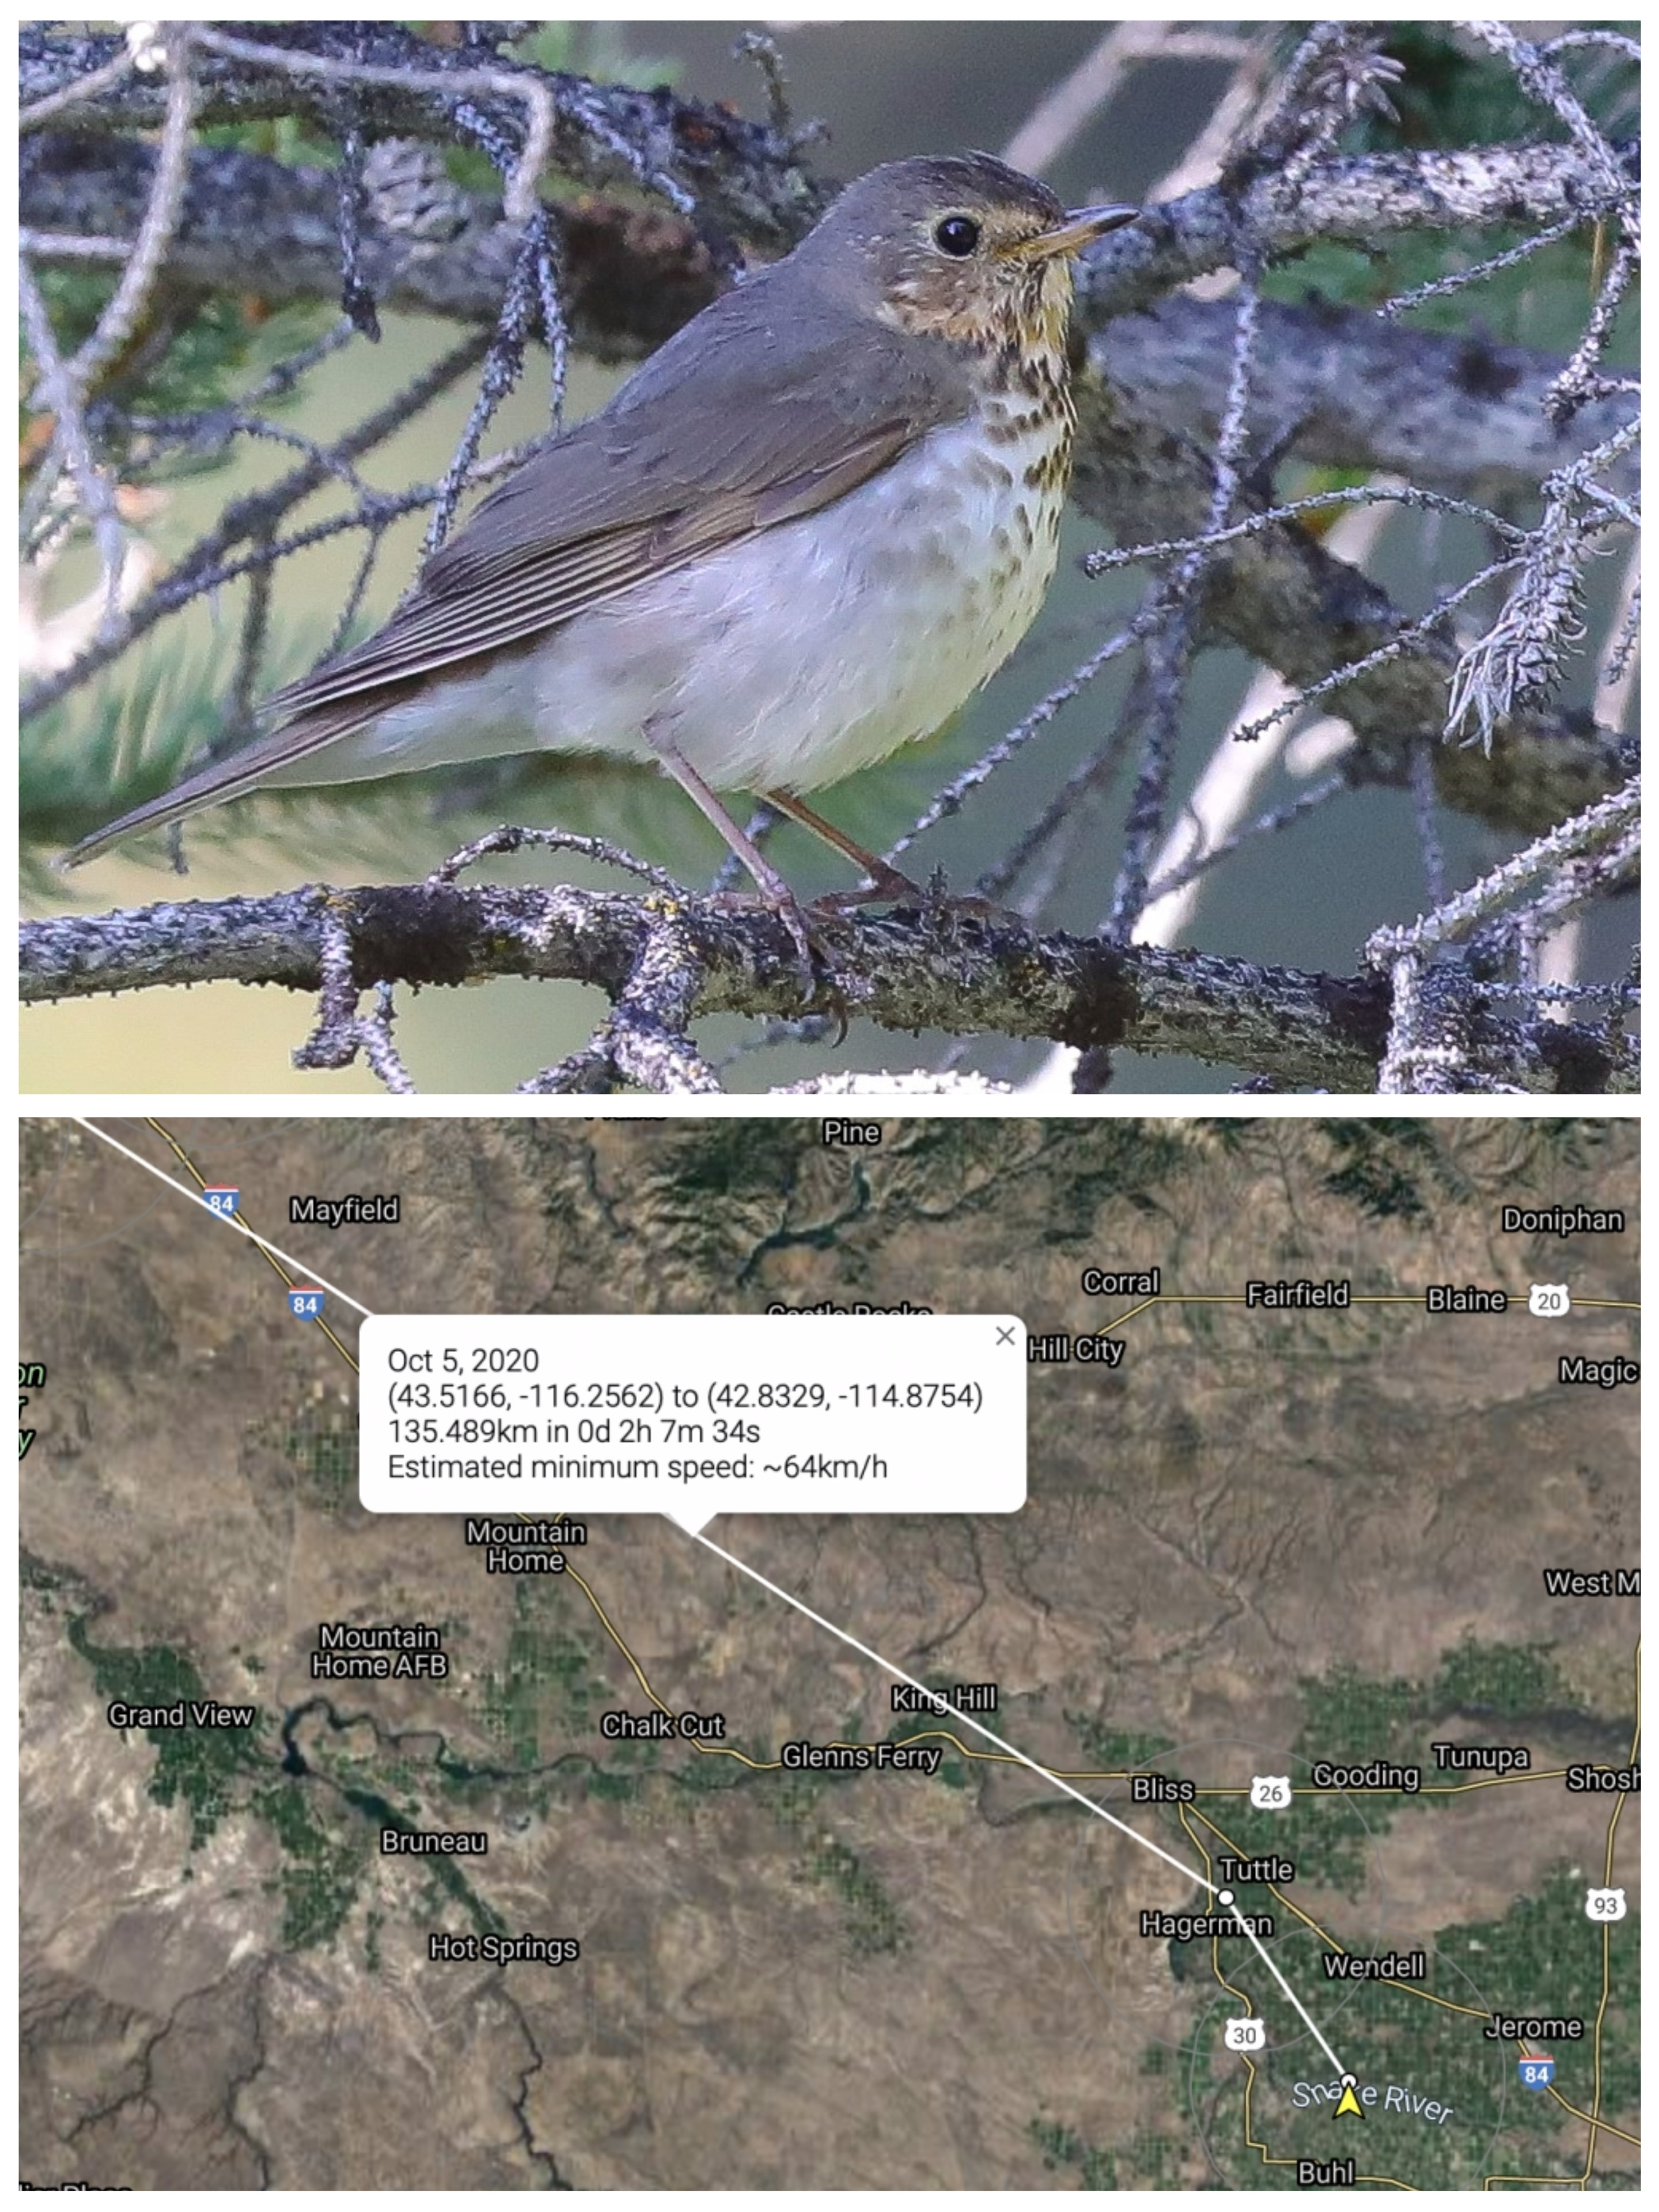 top image shows a swainson's thrush which is a small brown bird with white spotted chest. bottom image shows a map of towns in Idaho with a pin placed near Mountain Home Idaho.